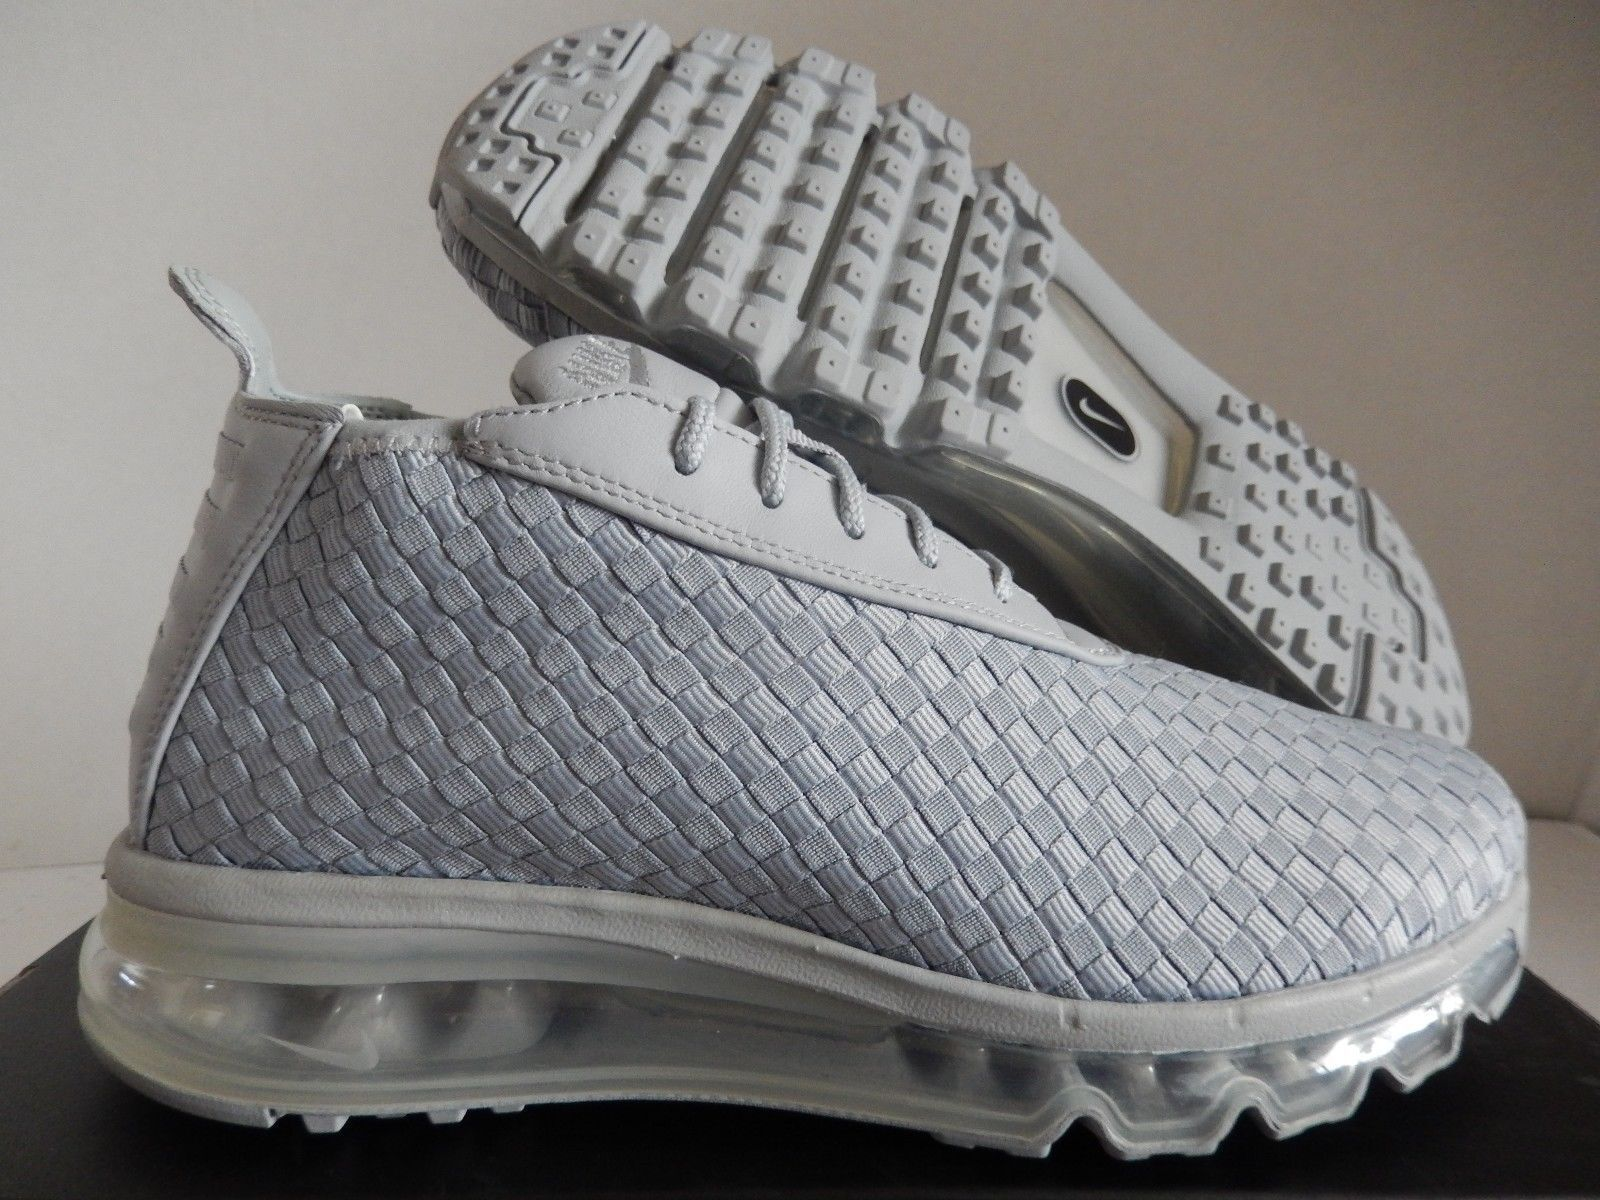 NIKE AIR MAX WOVEN BOOT 2018 WOLF GREY-WOLF GREY-WHITE 921854-001 Sz 6.5